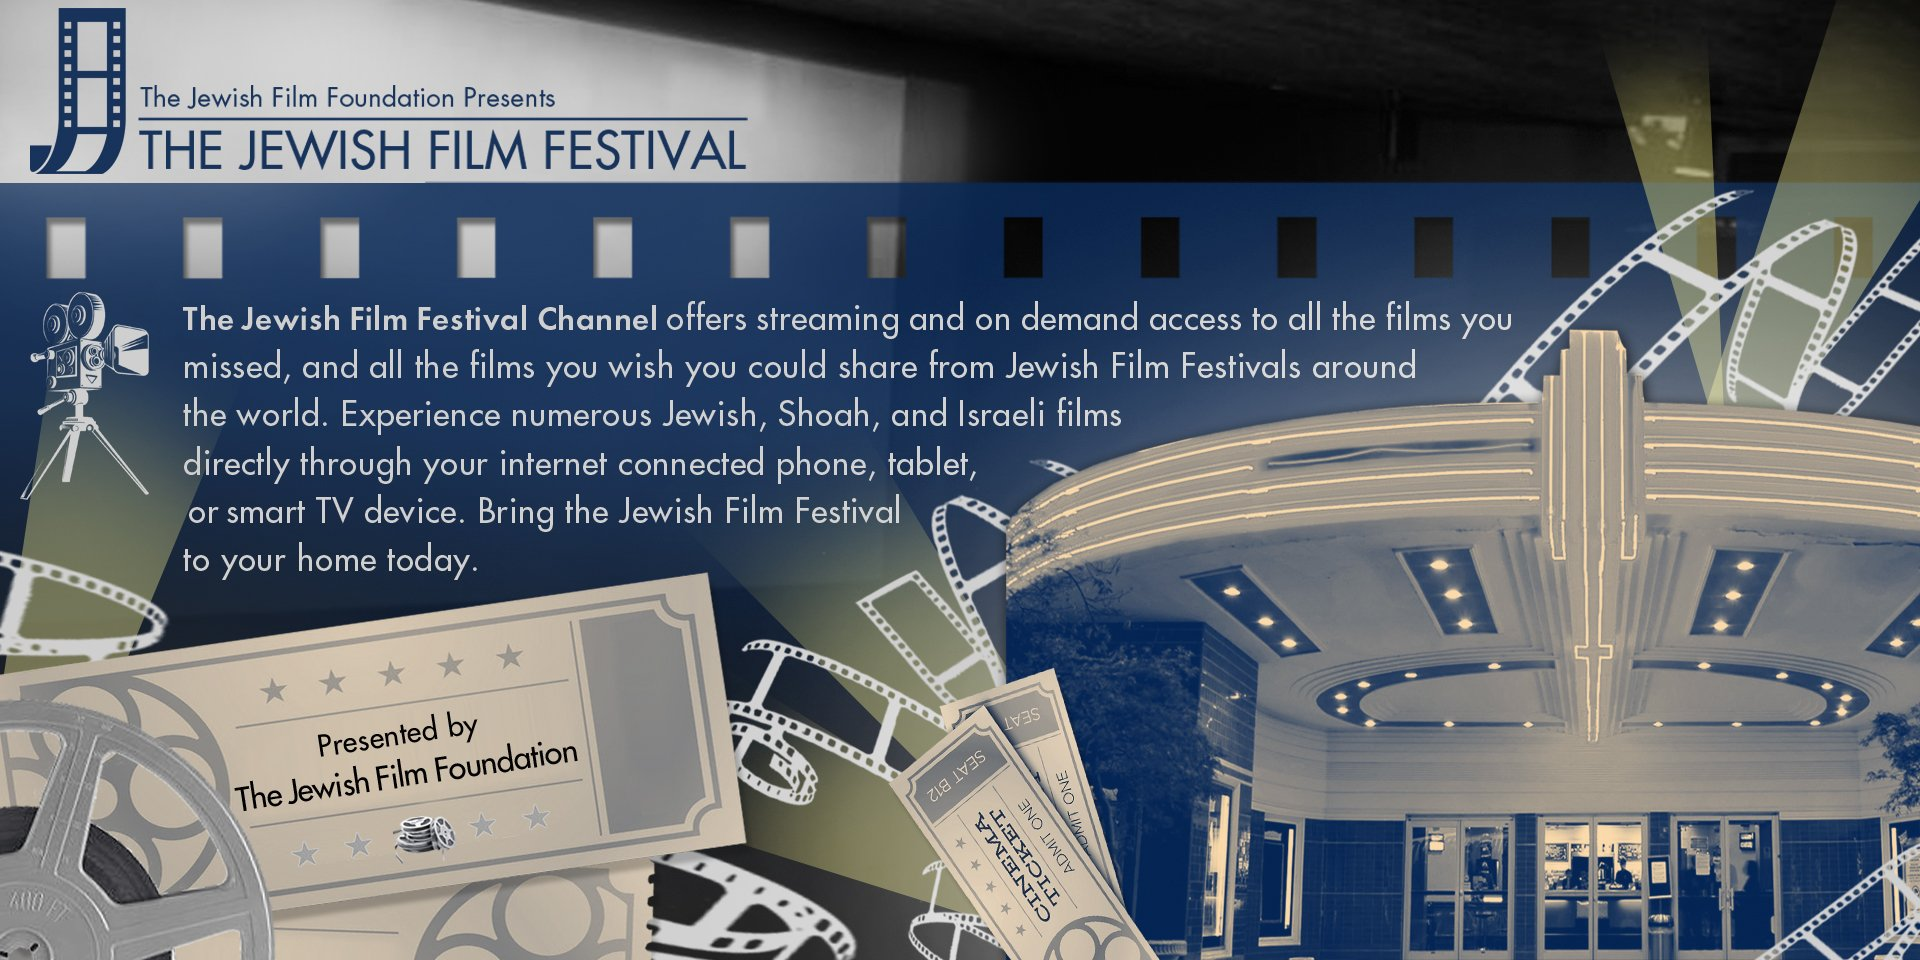 The Jewish Film Festival Channel